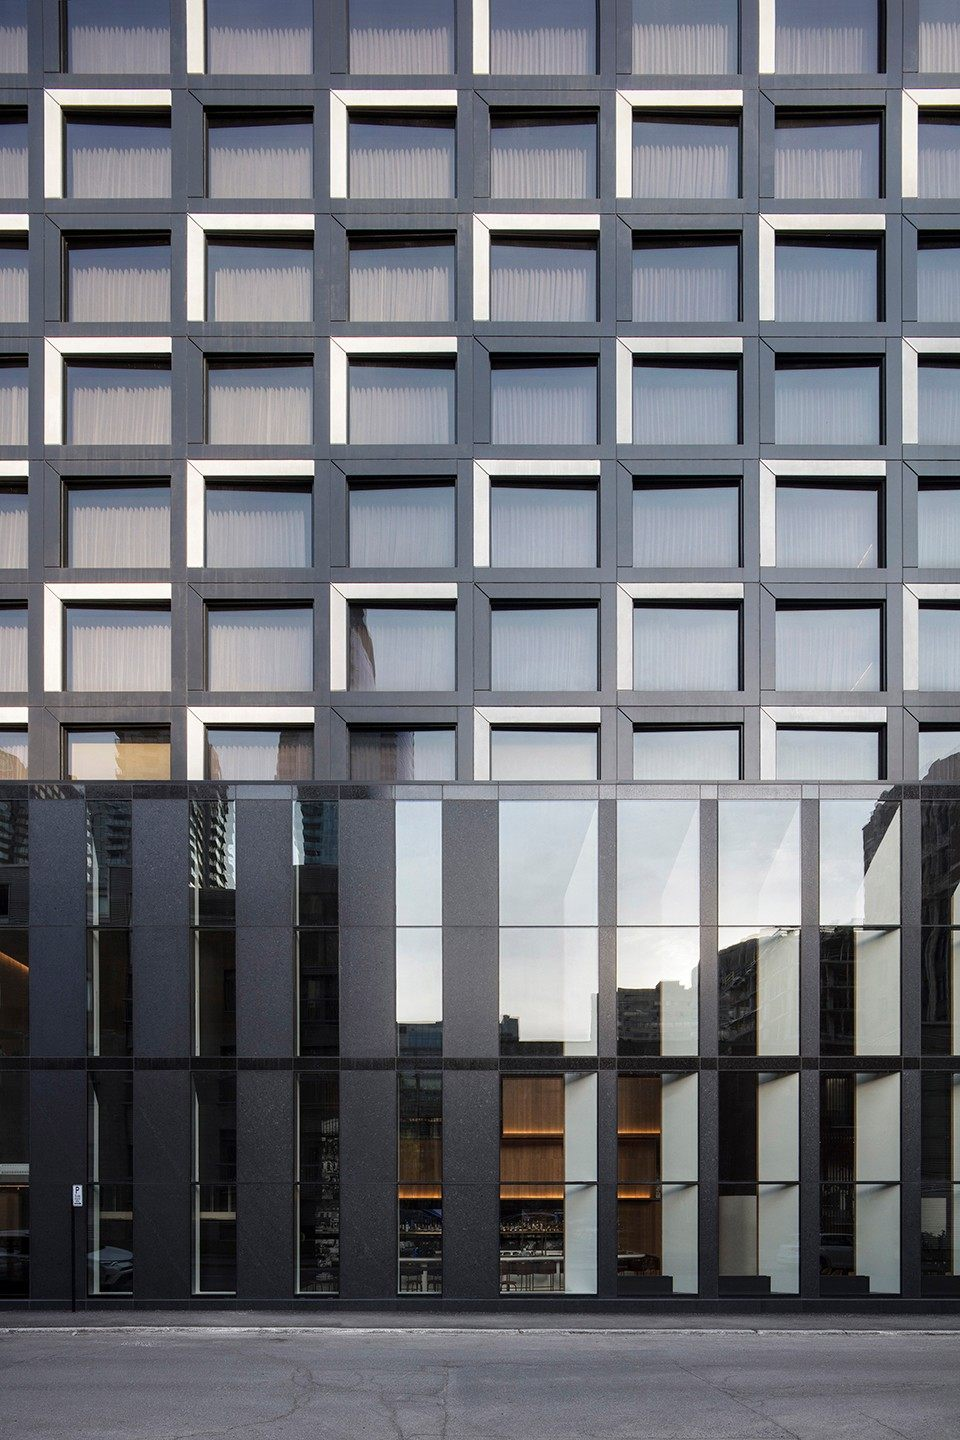 015-hotel-monville-by-acdf-architecture.jpg